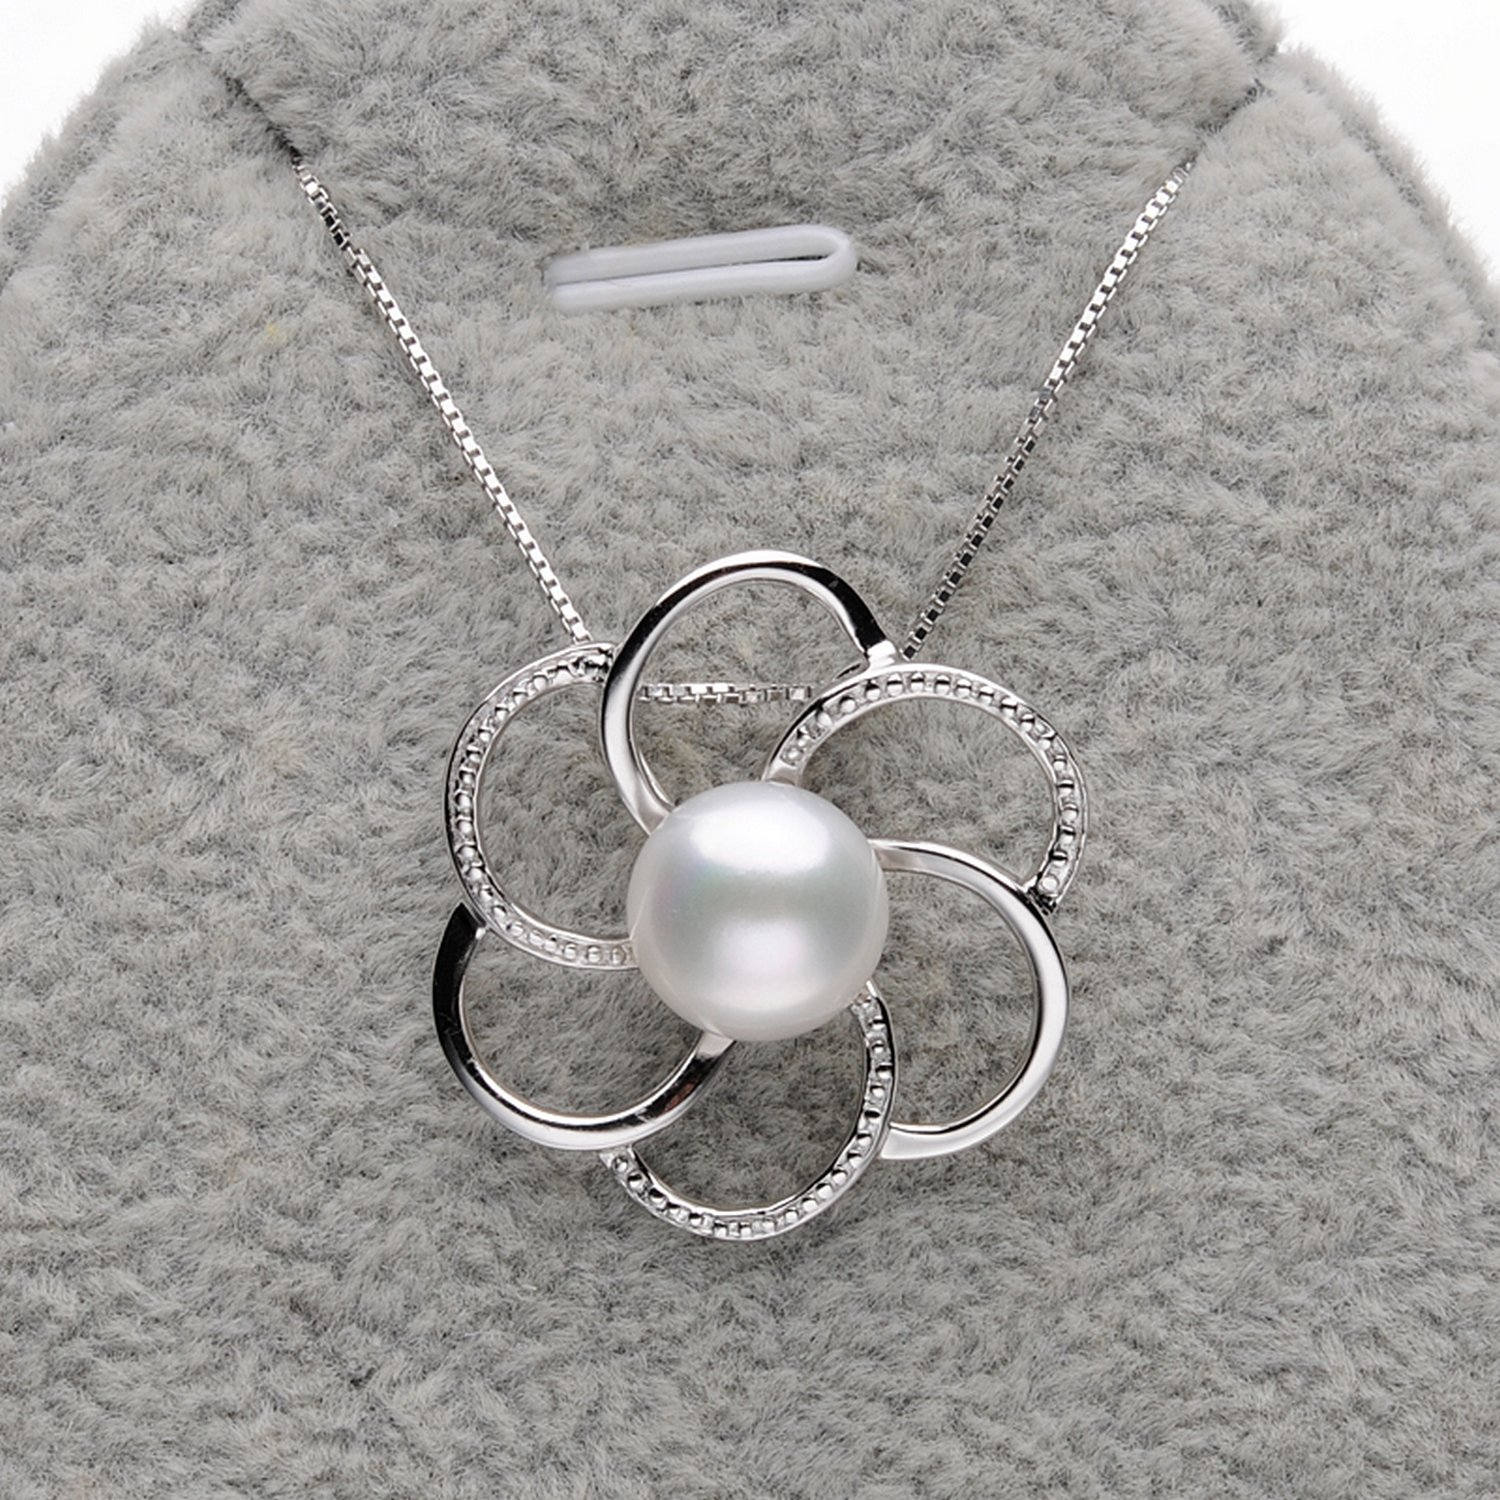 CS-DB Pendants Flower-Shaped White Pearls Silver Necklaces